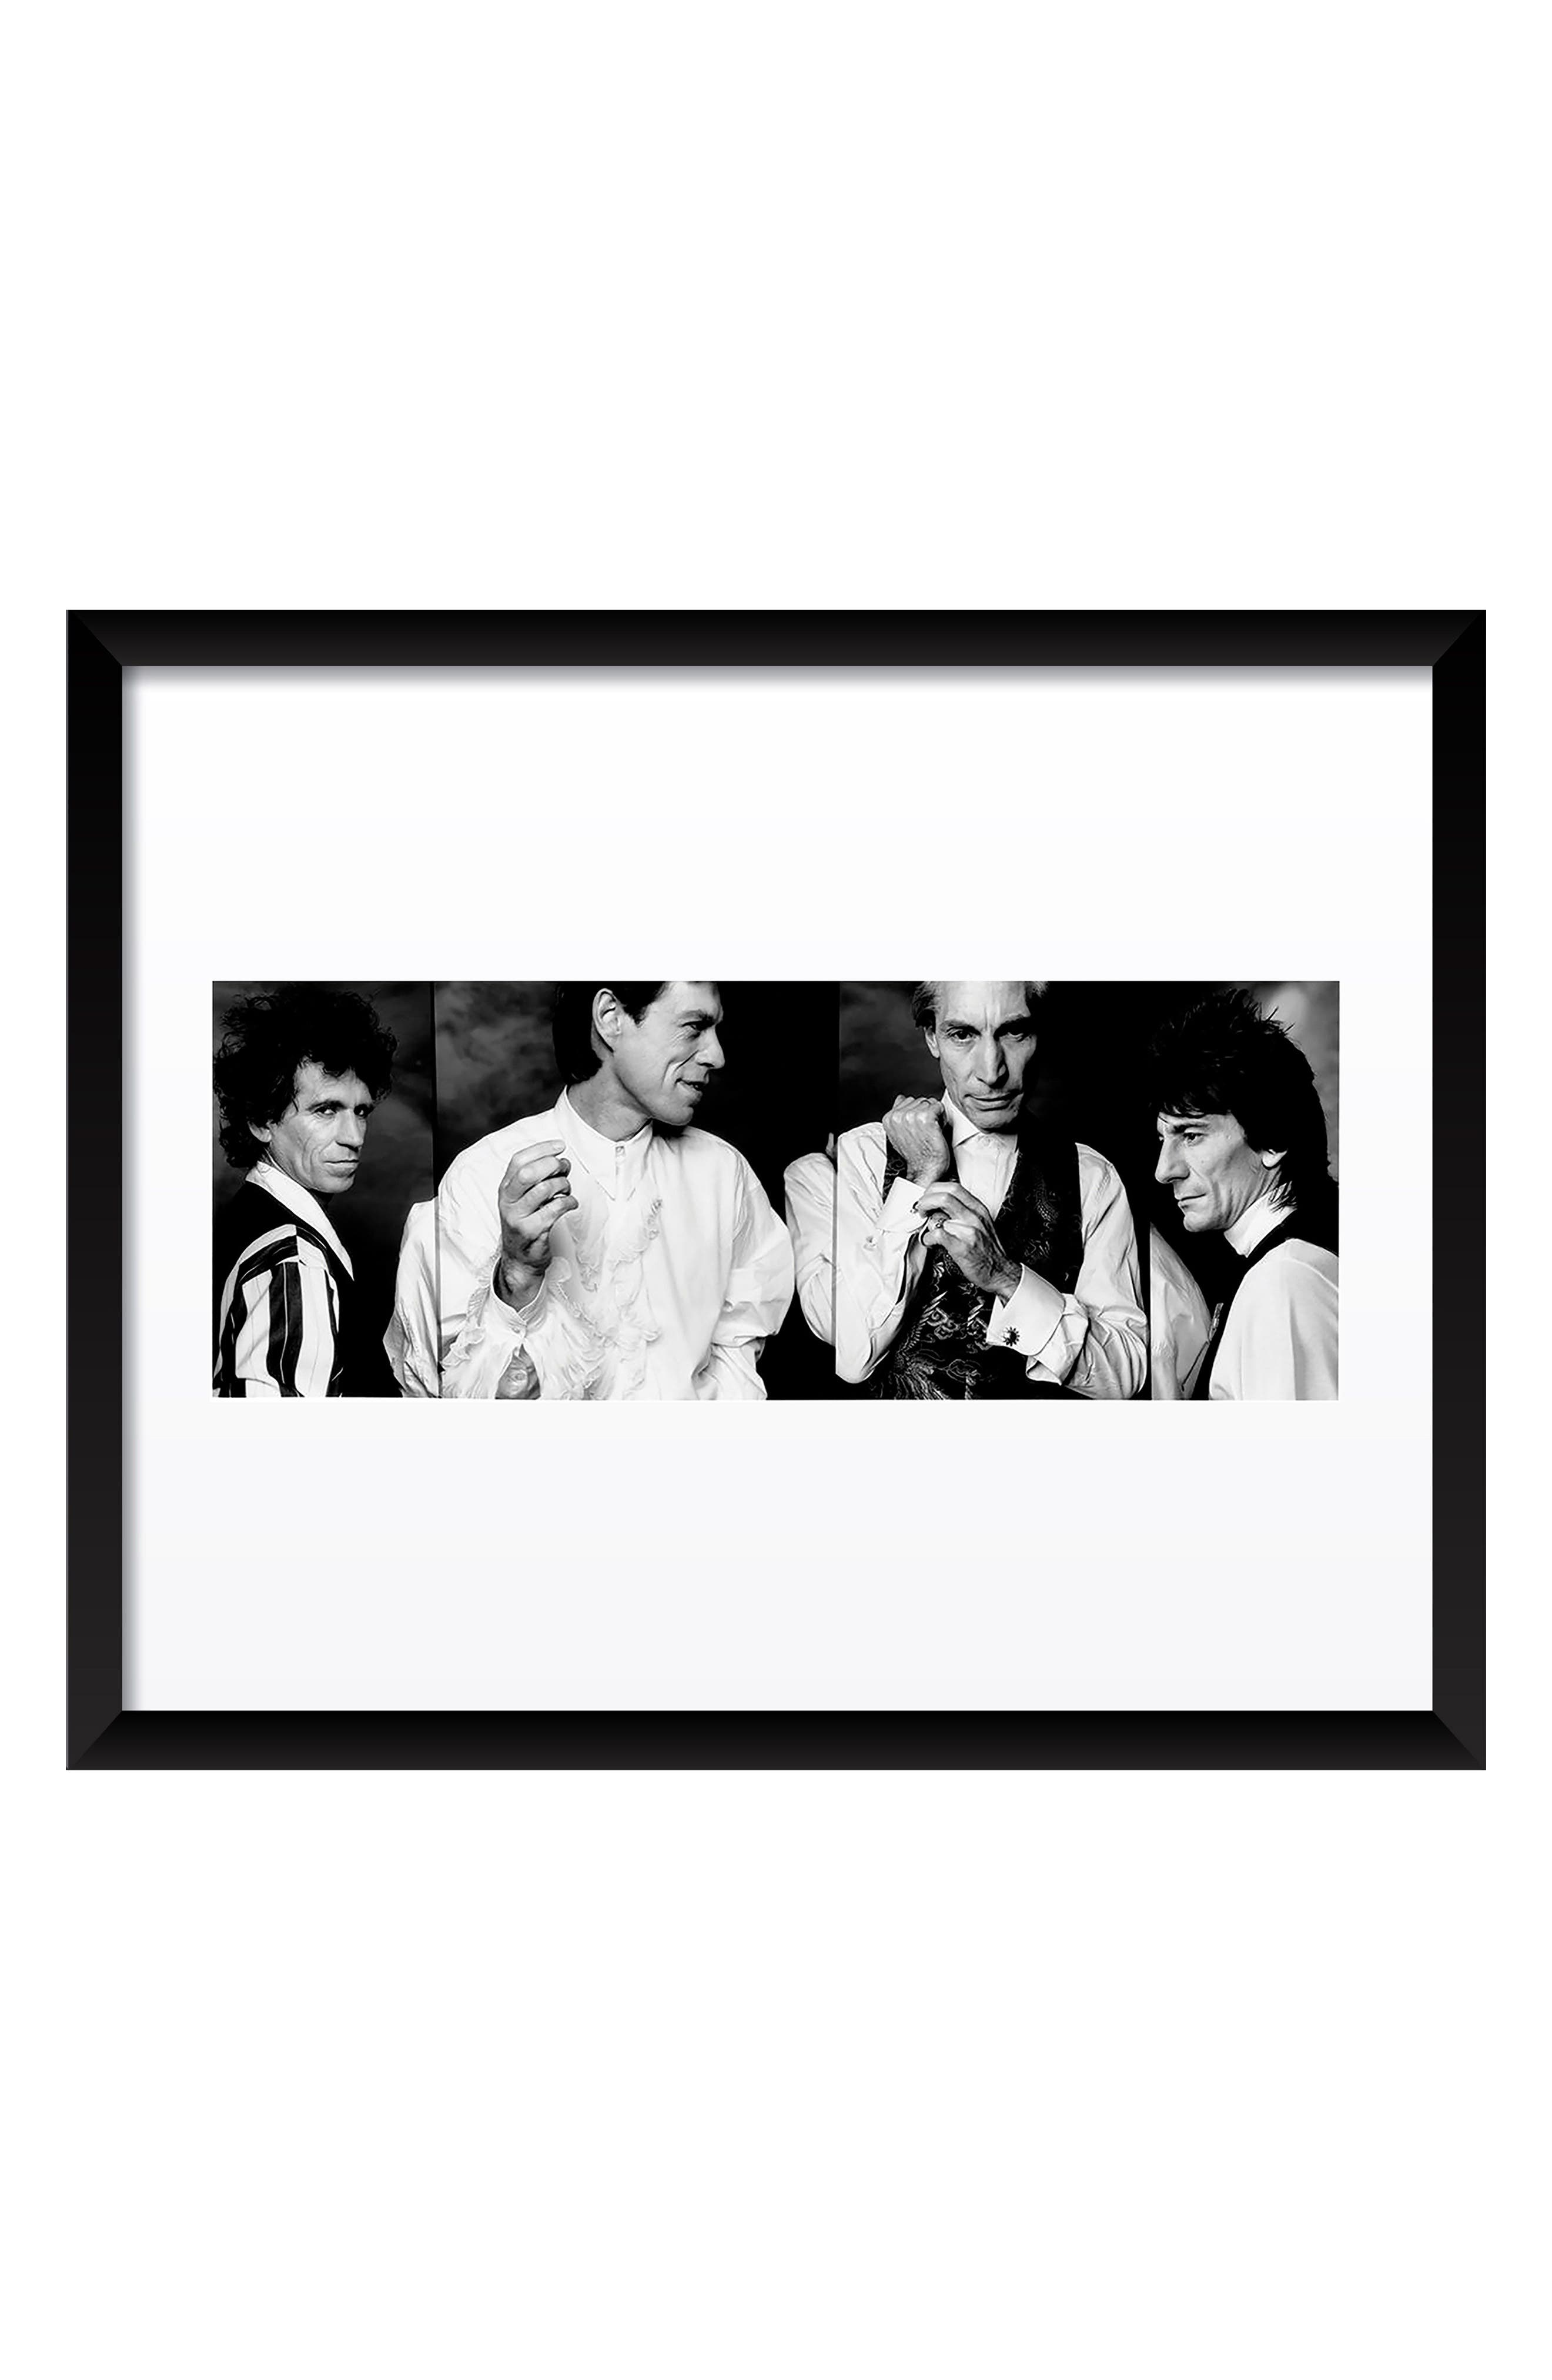 Alternate Image 1 Selected - Artography Limited The Rolling Stones Fine Art Print